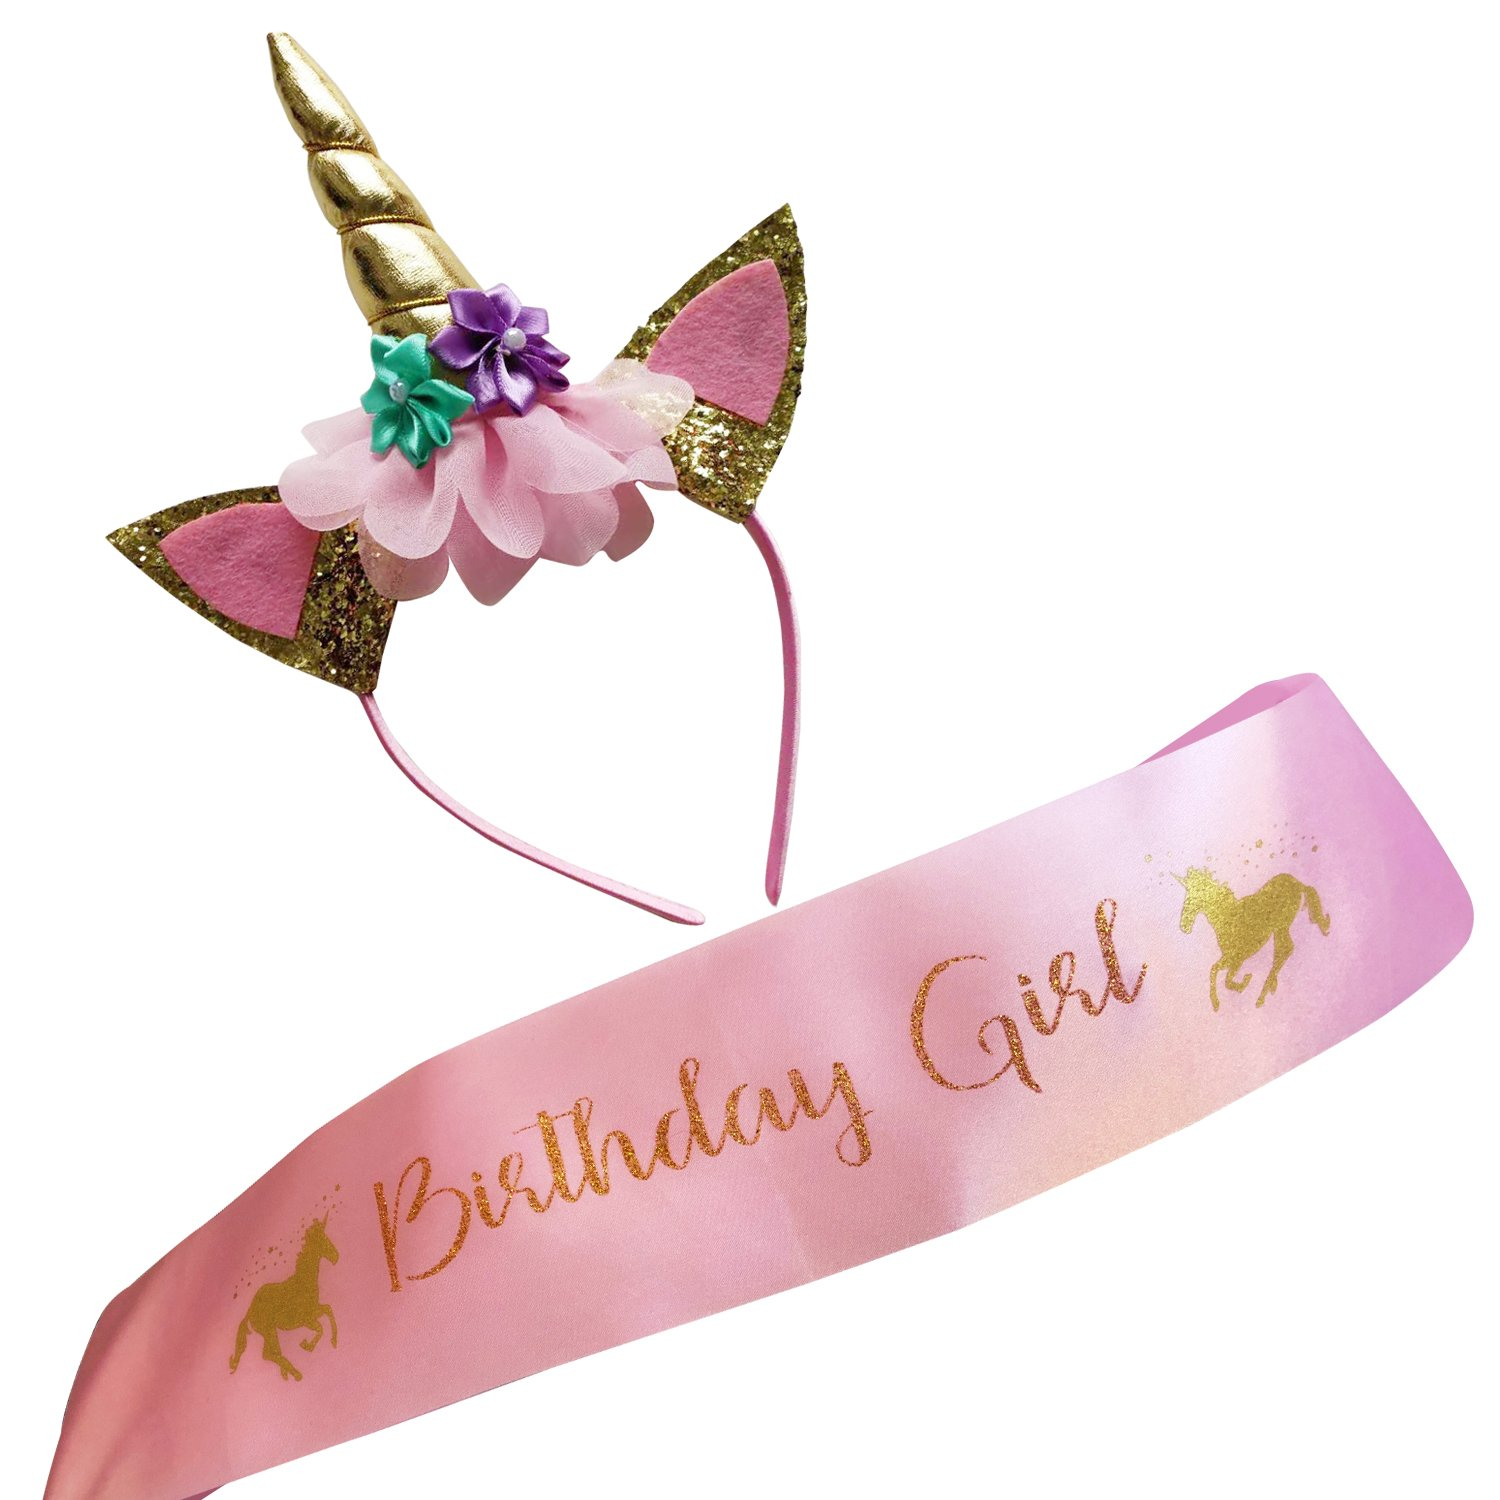 Unicorn Birthday Girl Set of Gold Glitter Unicorn Headband and Pink Satin Sash for Girls with eBook included,Happy Birthday Unicorn Party Supplies, Favors and Decorations - 2019 New.